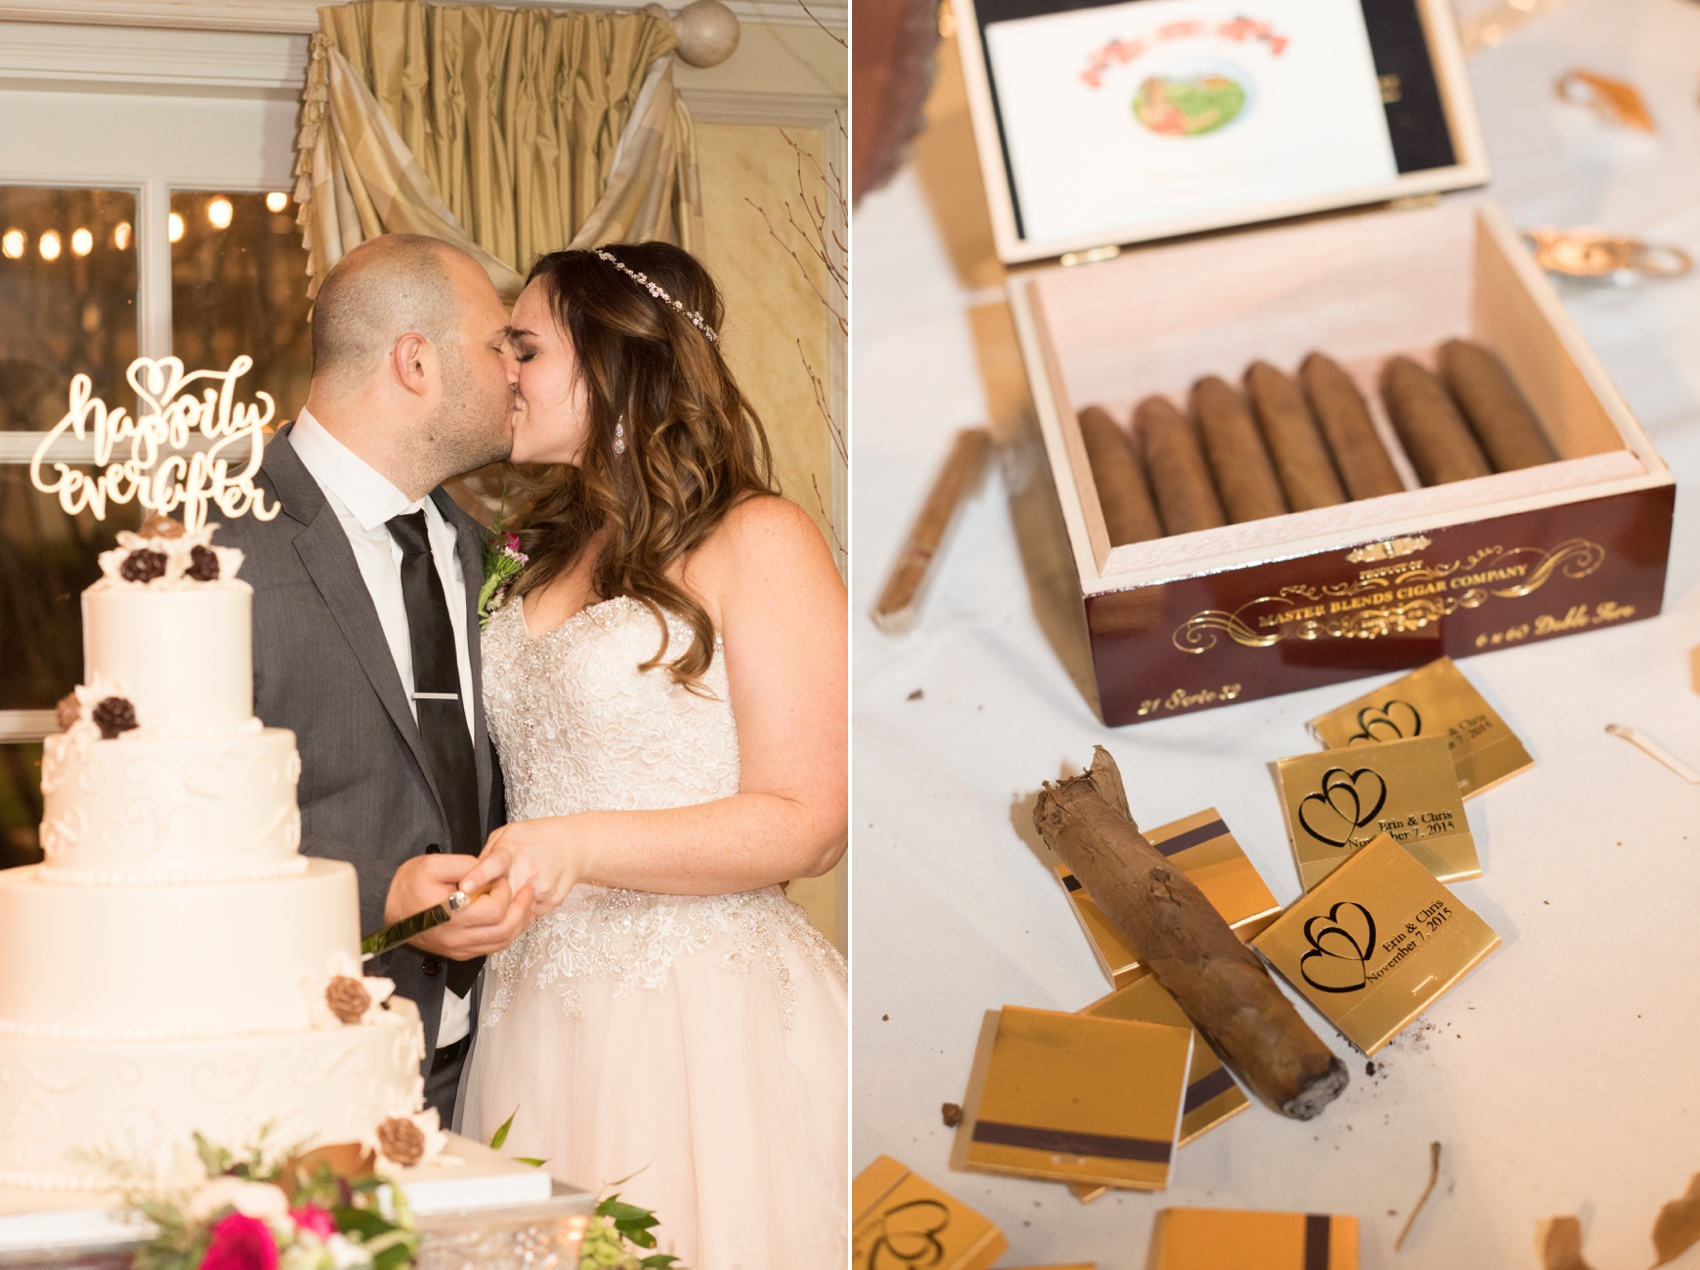 Olde Mill Inn wedding ceremony by Mikkel Paige Photography, NYC and Raleigh wedding photographer. Cake cutting and custom matchbooks and cigar bar.